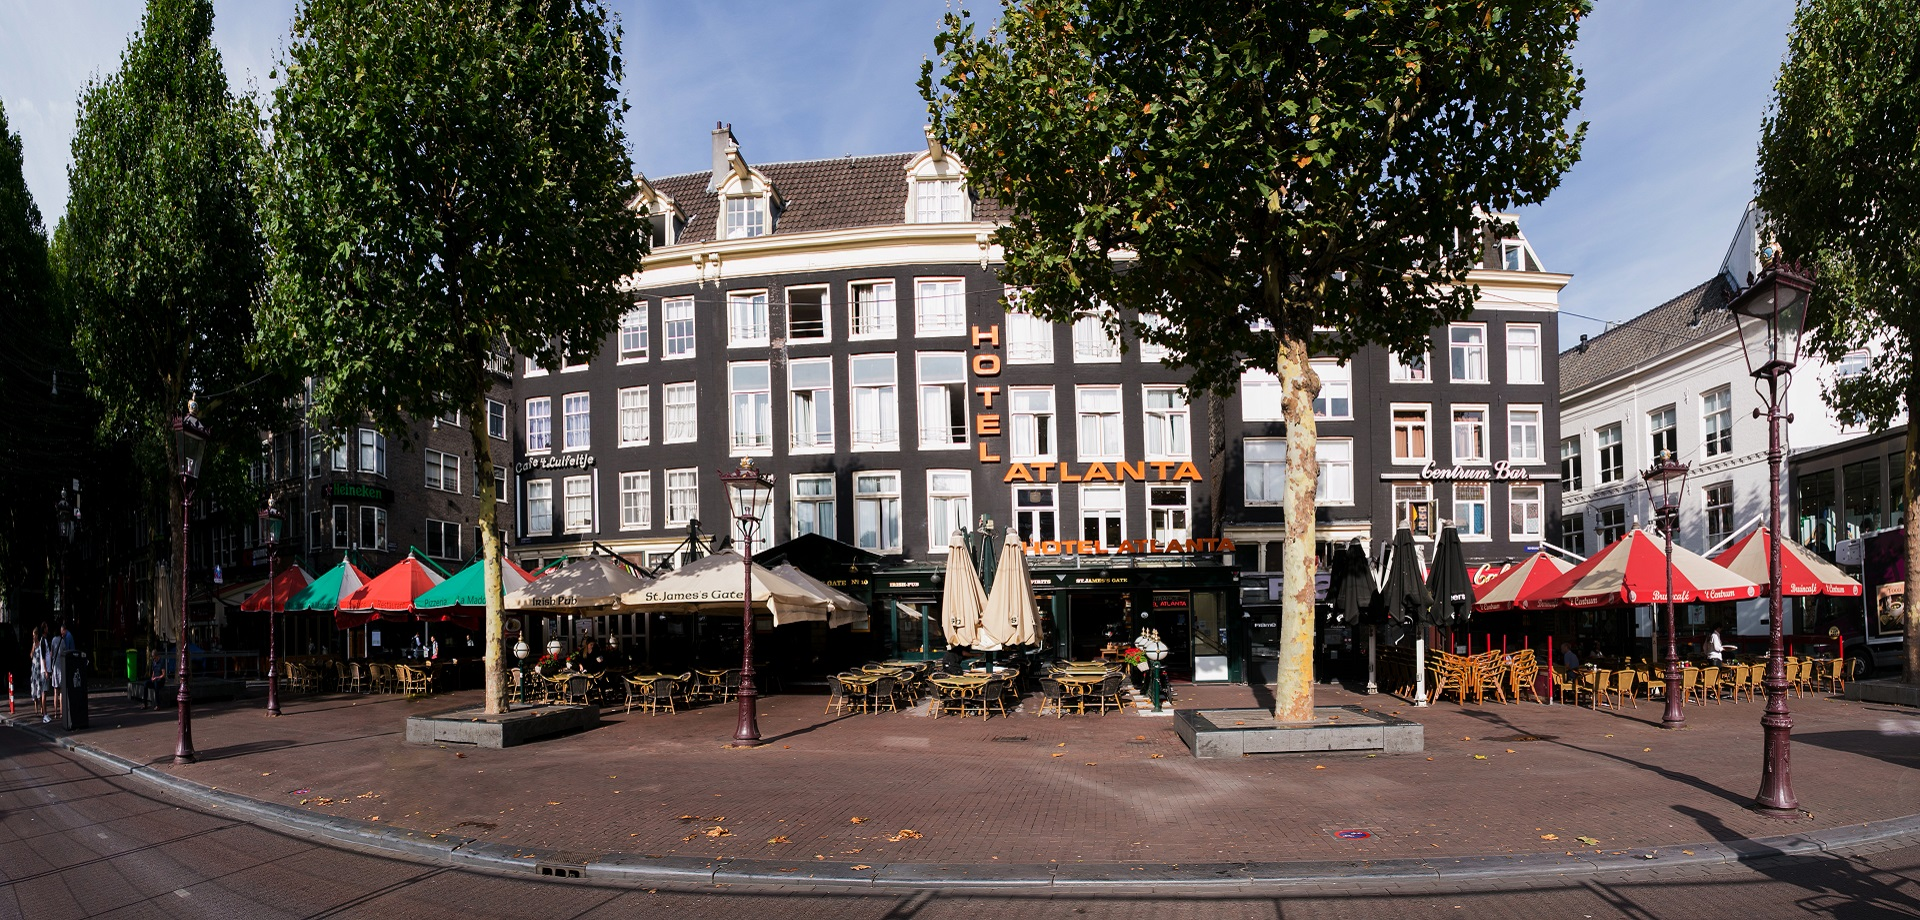 Address: Rembrandtplein 8 - 10, Amsterdam